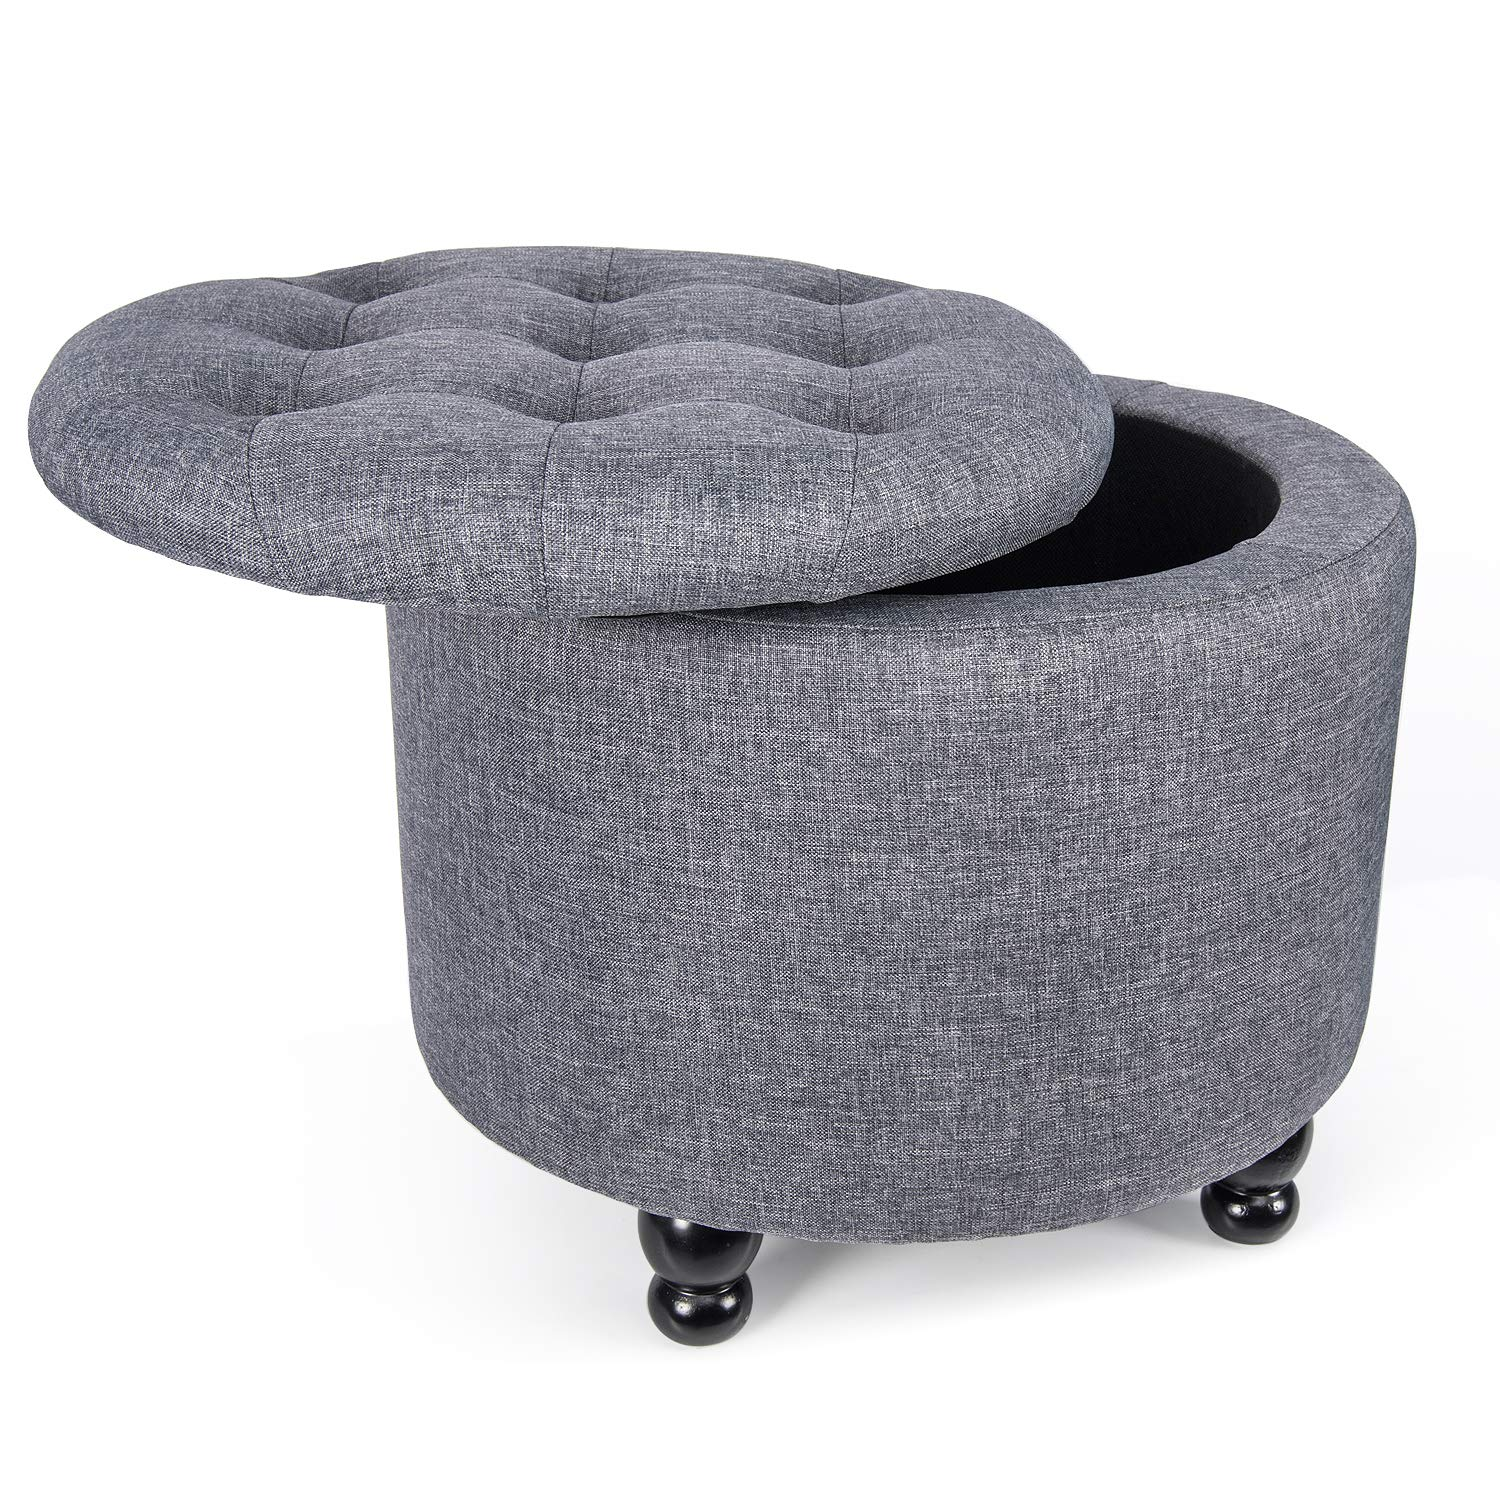 Grey YOURLITEAMZ Modern Round Storage Ottoman Fabric Cushion Button Tufted Storage Footstool with Removable Lid